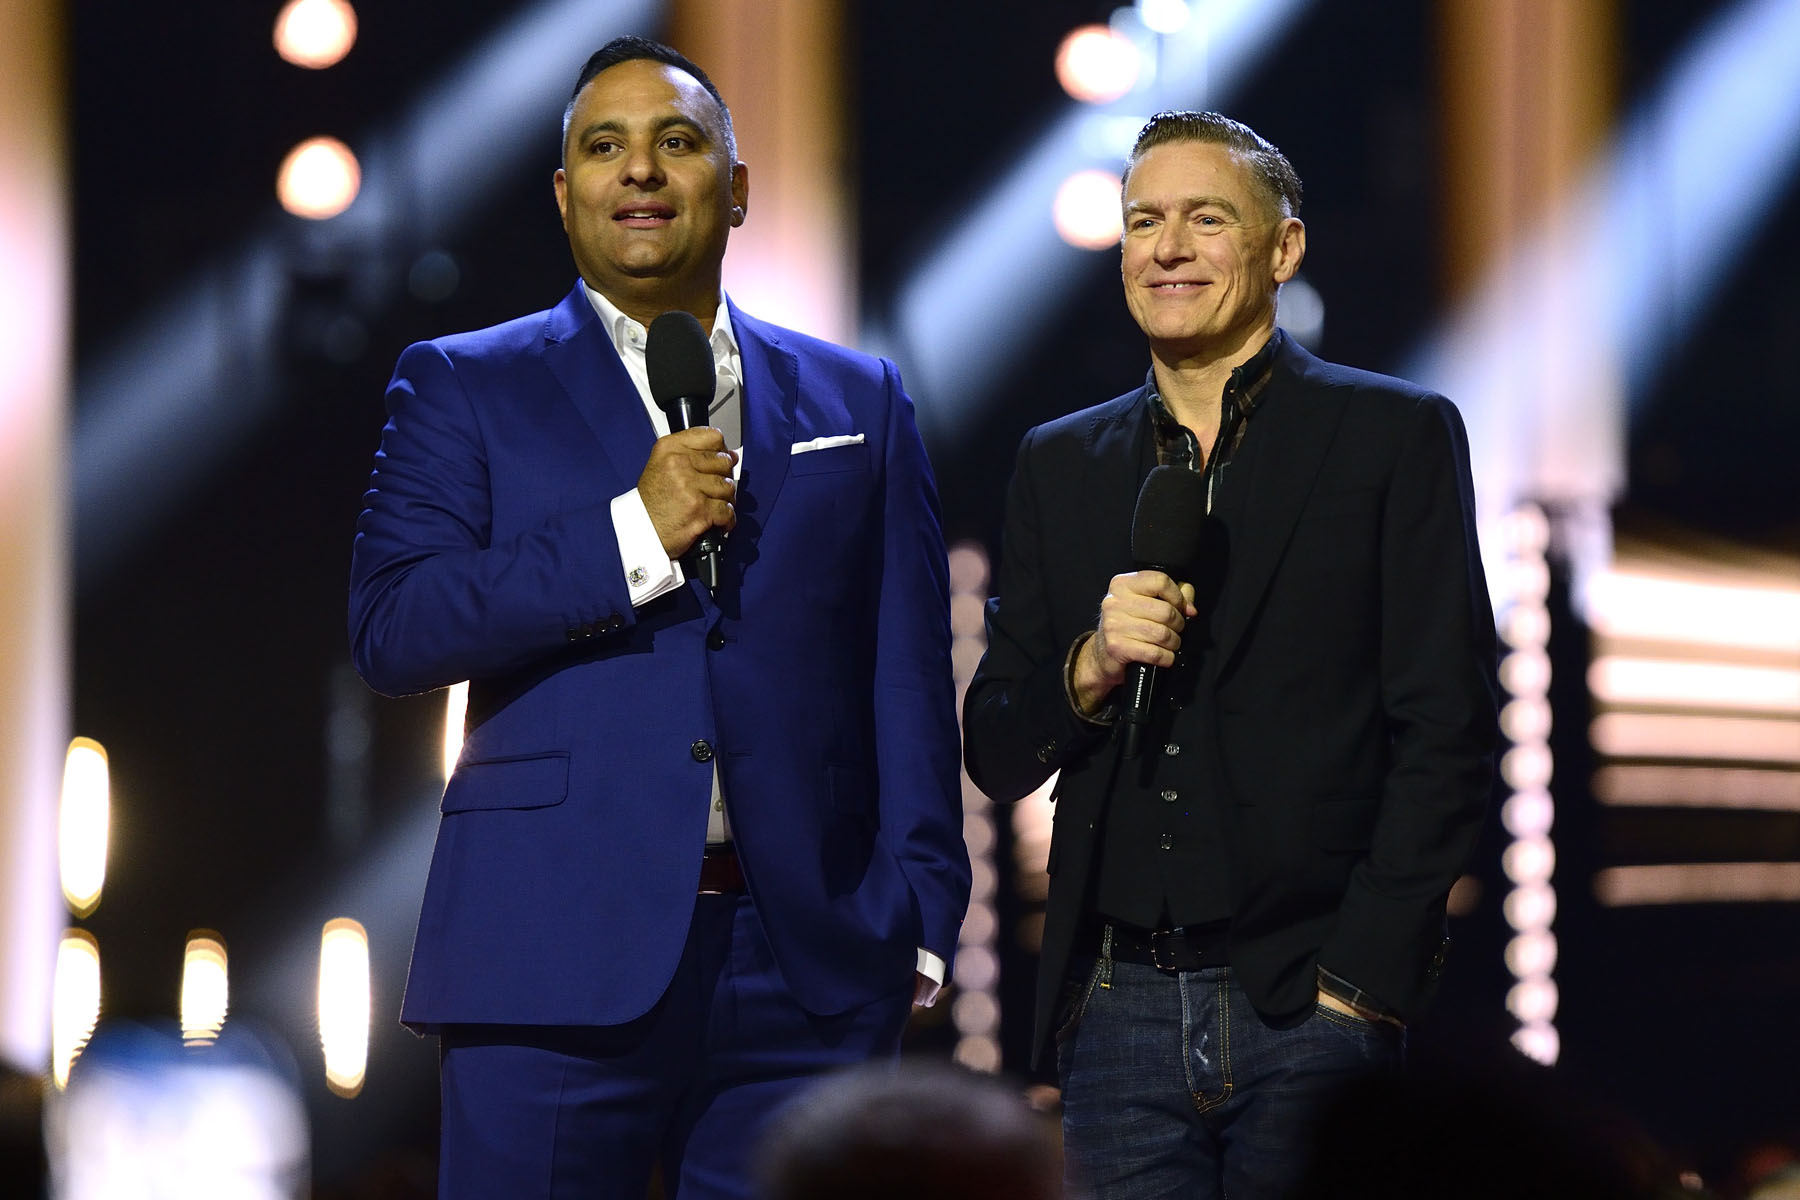 Comedian Russell Peters and musician Bryan Adams hosted this year's show.